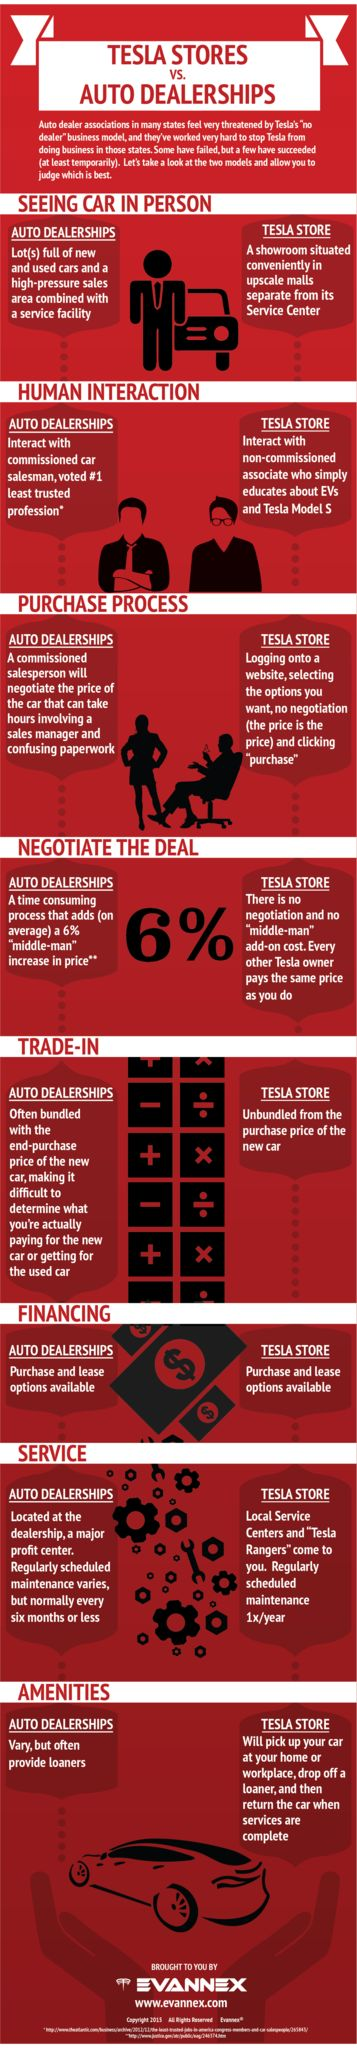 [Infographic] Tesla Stores vs. Franchise Auto Dealerships, for more, visit: www.evannex.com